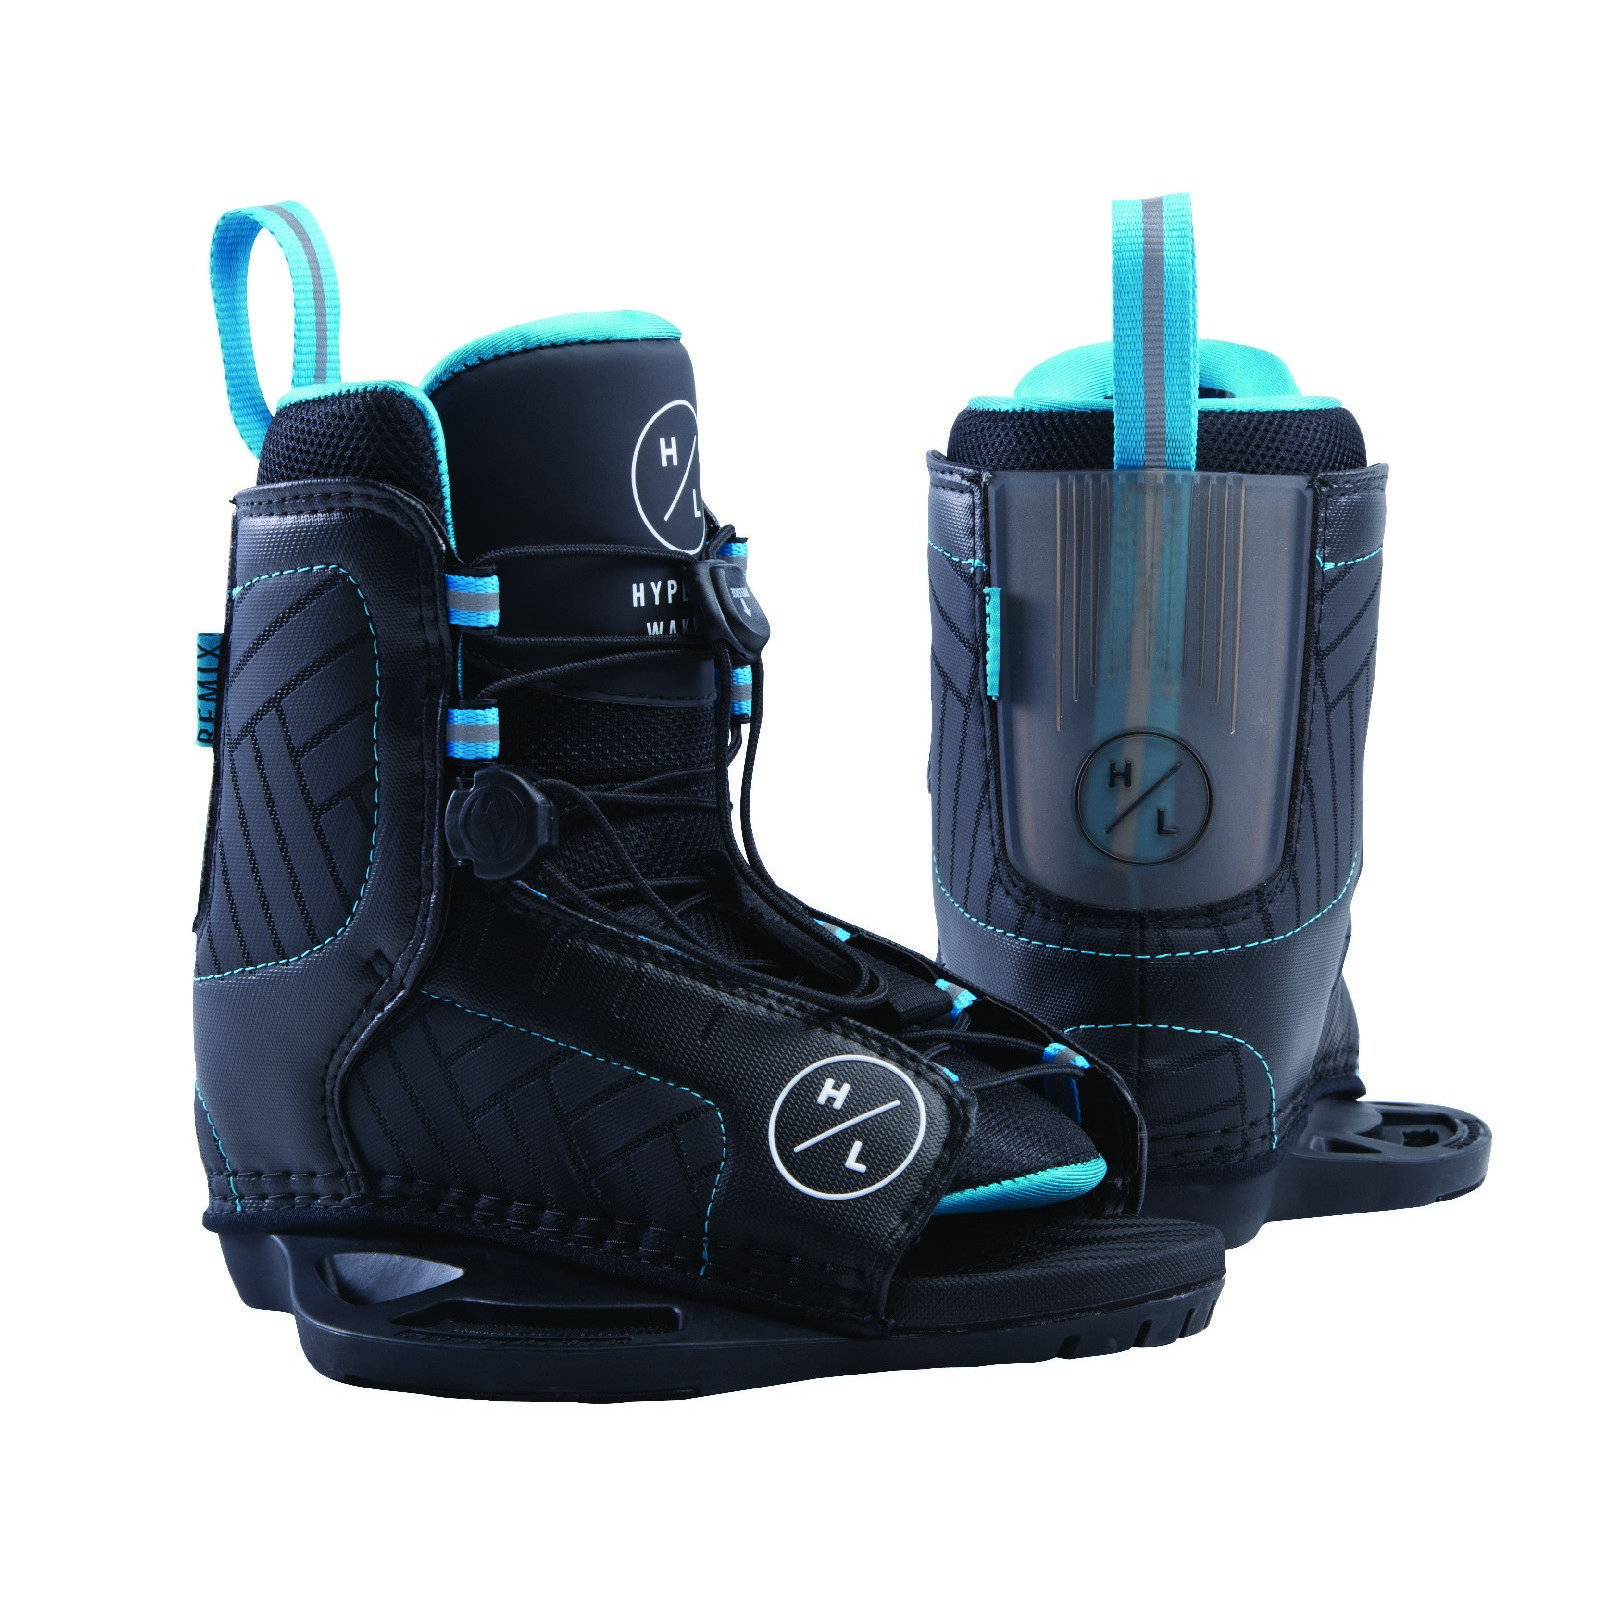 REMIX KIDS BOOT EU 29-32.5/US 12/Y2 HYPERLITE 2019